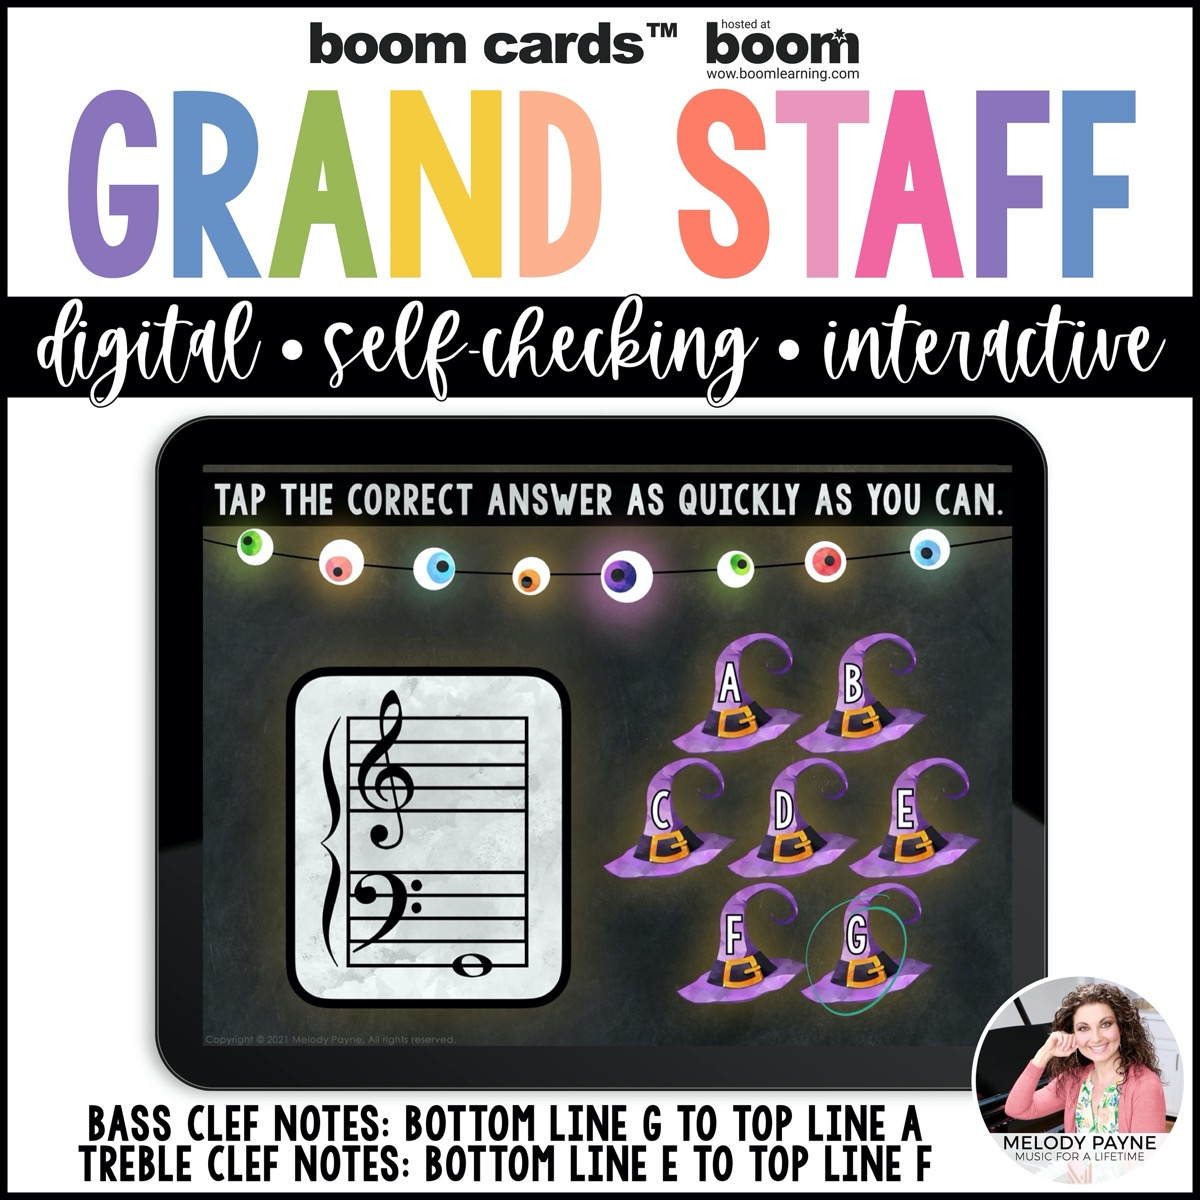 Halloween Boom Cards with eyeballs and witches' hats